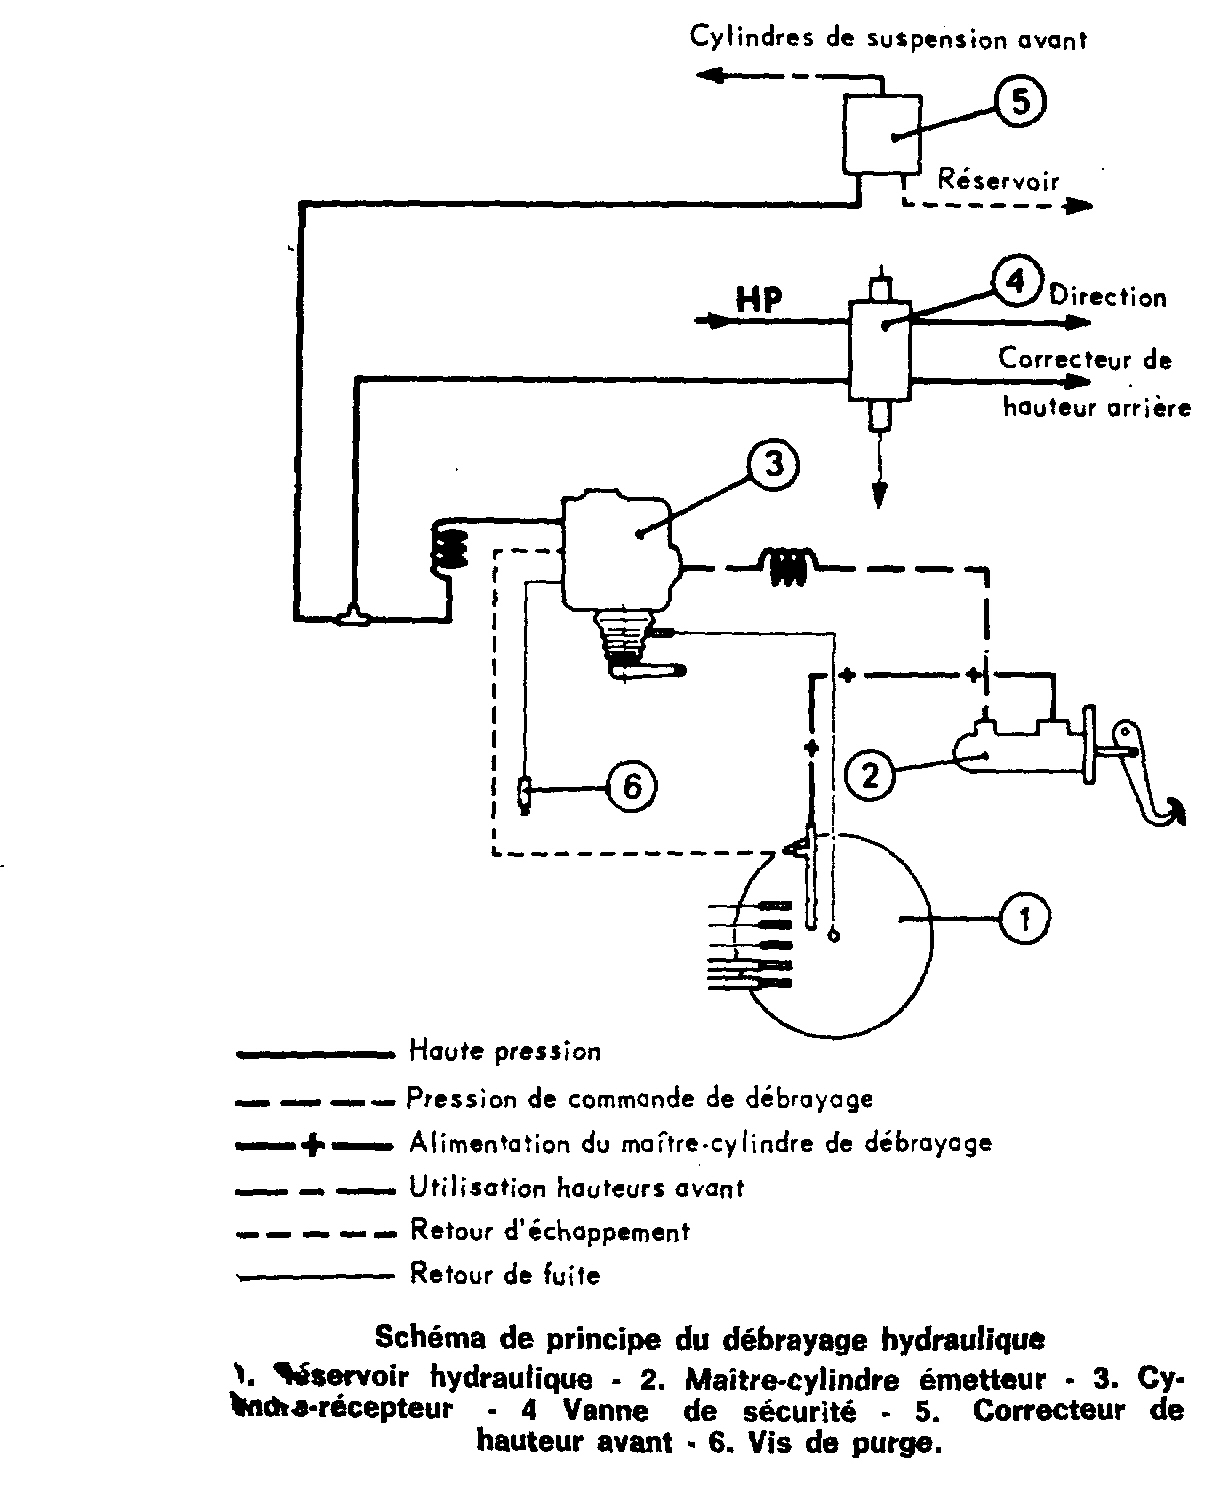 Hydraulic clutch on hydraulic clutch system diagram